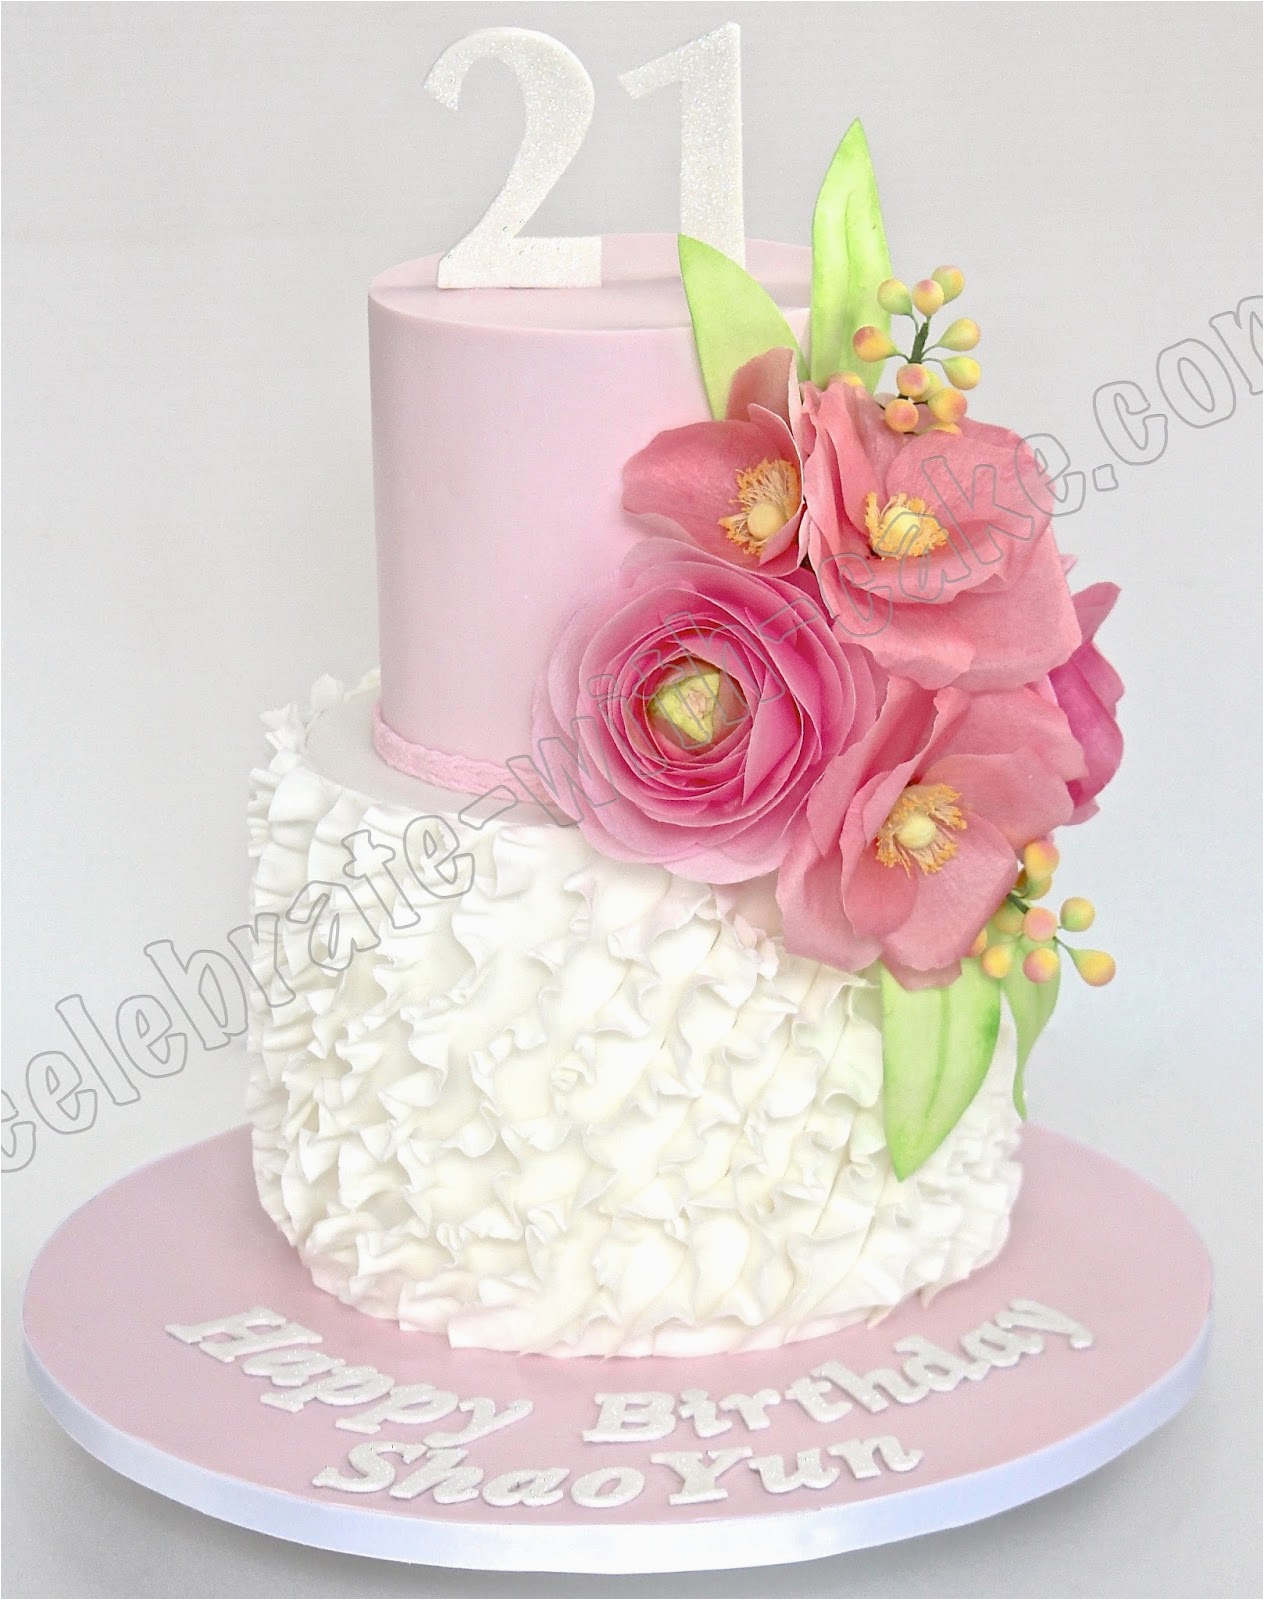 celebrate with cake flowers and ruffles 21st birthday